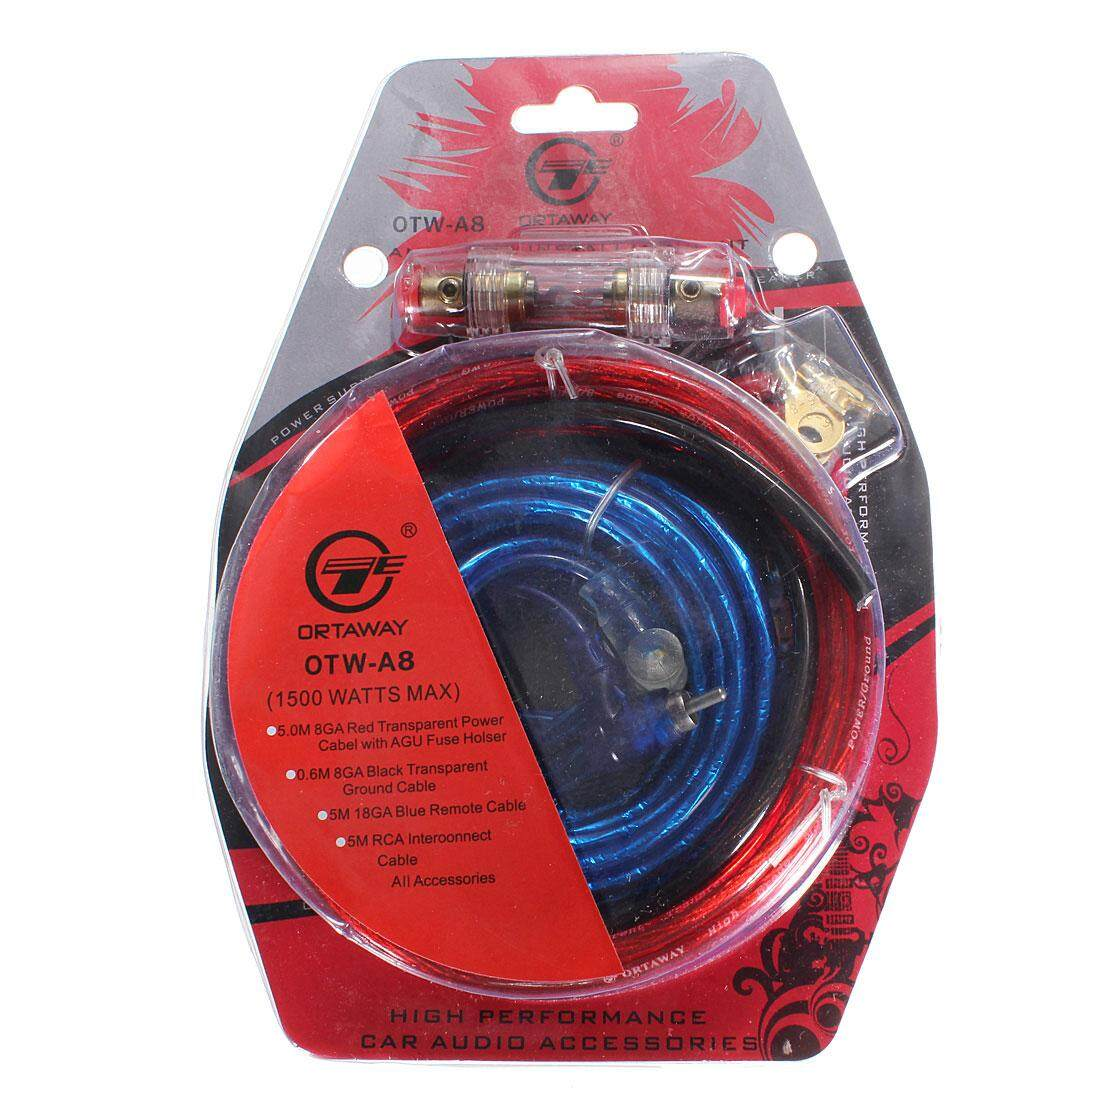 Gauge 4 Amplifier Wiring Kit For Car Audio Philippines Price Specs 2 Pcs 1500w Complete 10 Amp Cable Speaker Sub Subwoofer